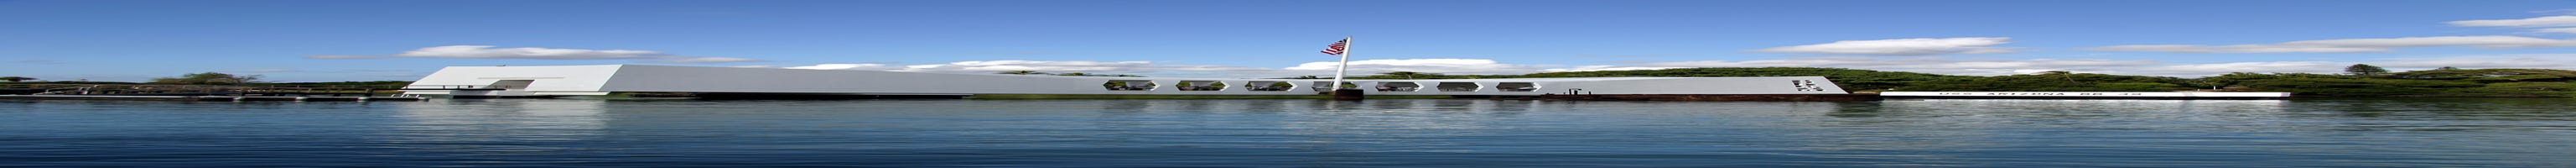 The 50 most visited monuments and memorials in the USA